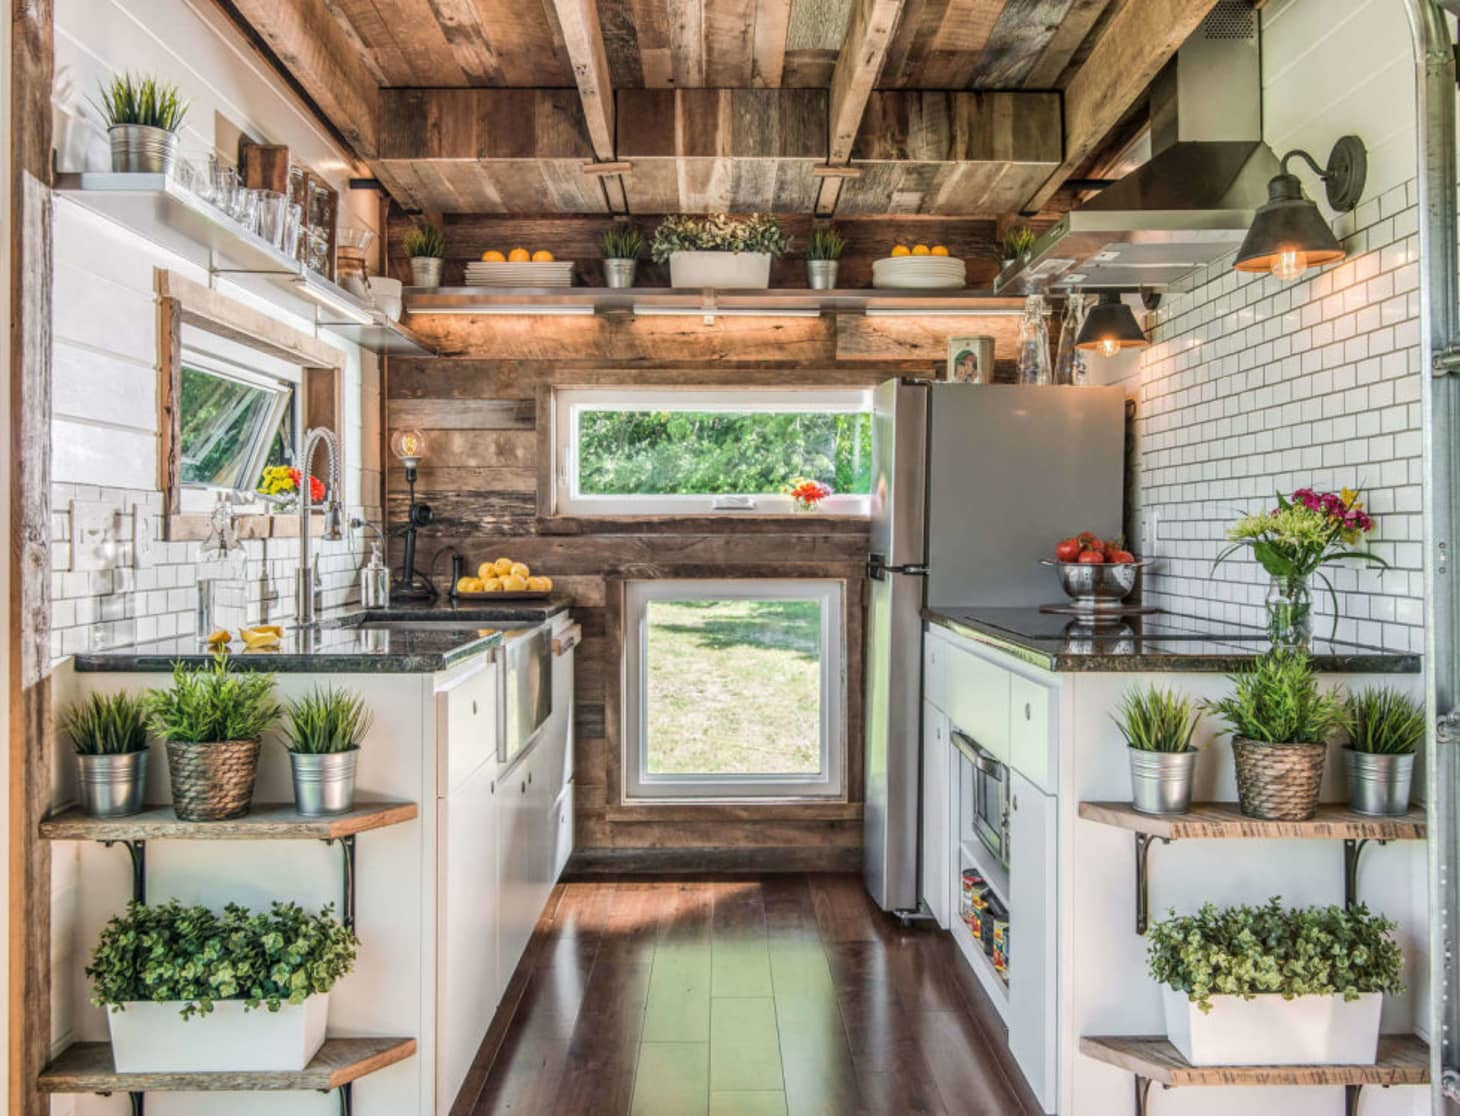 7 Kitchen Storage Ideas to Steal from Tiny Houses | Kitchn